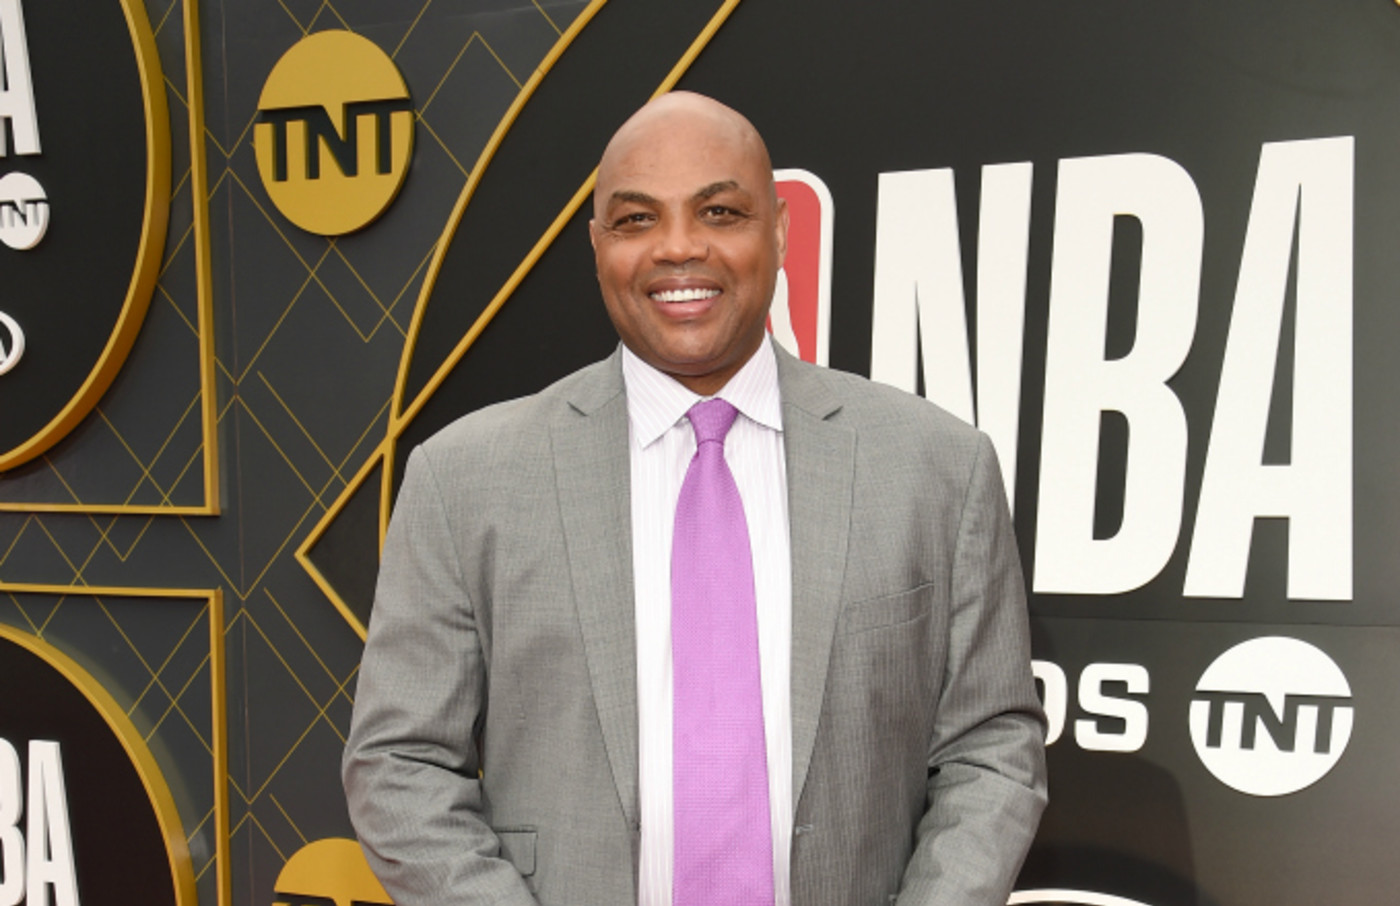 Charles Barkley attends the 2019 NBA Awards